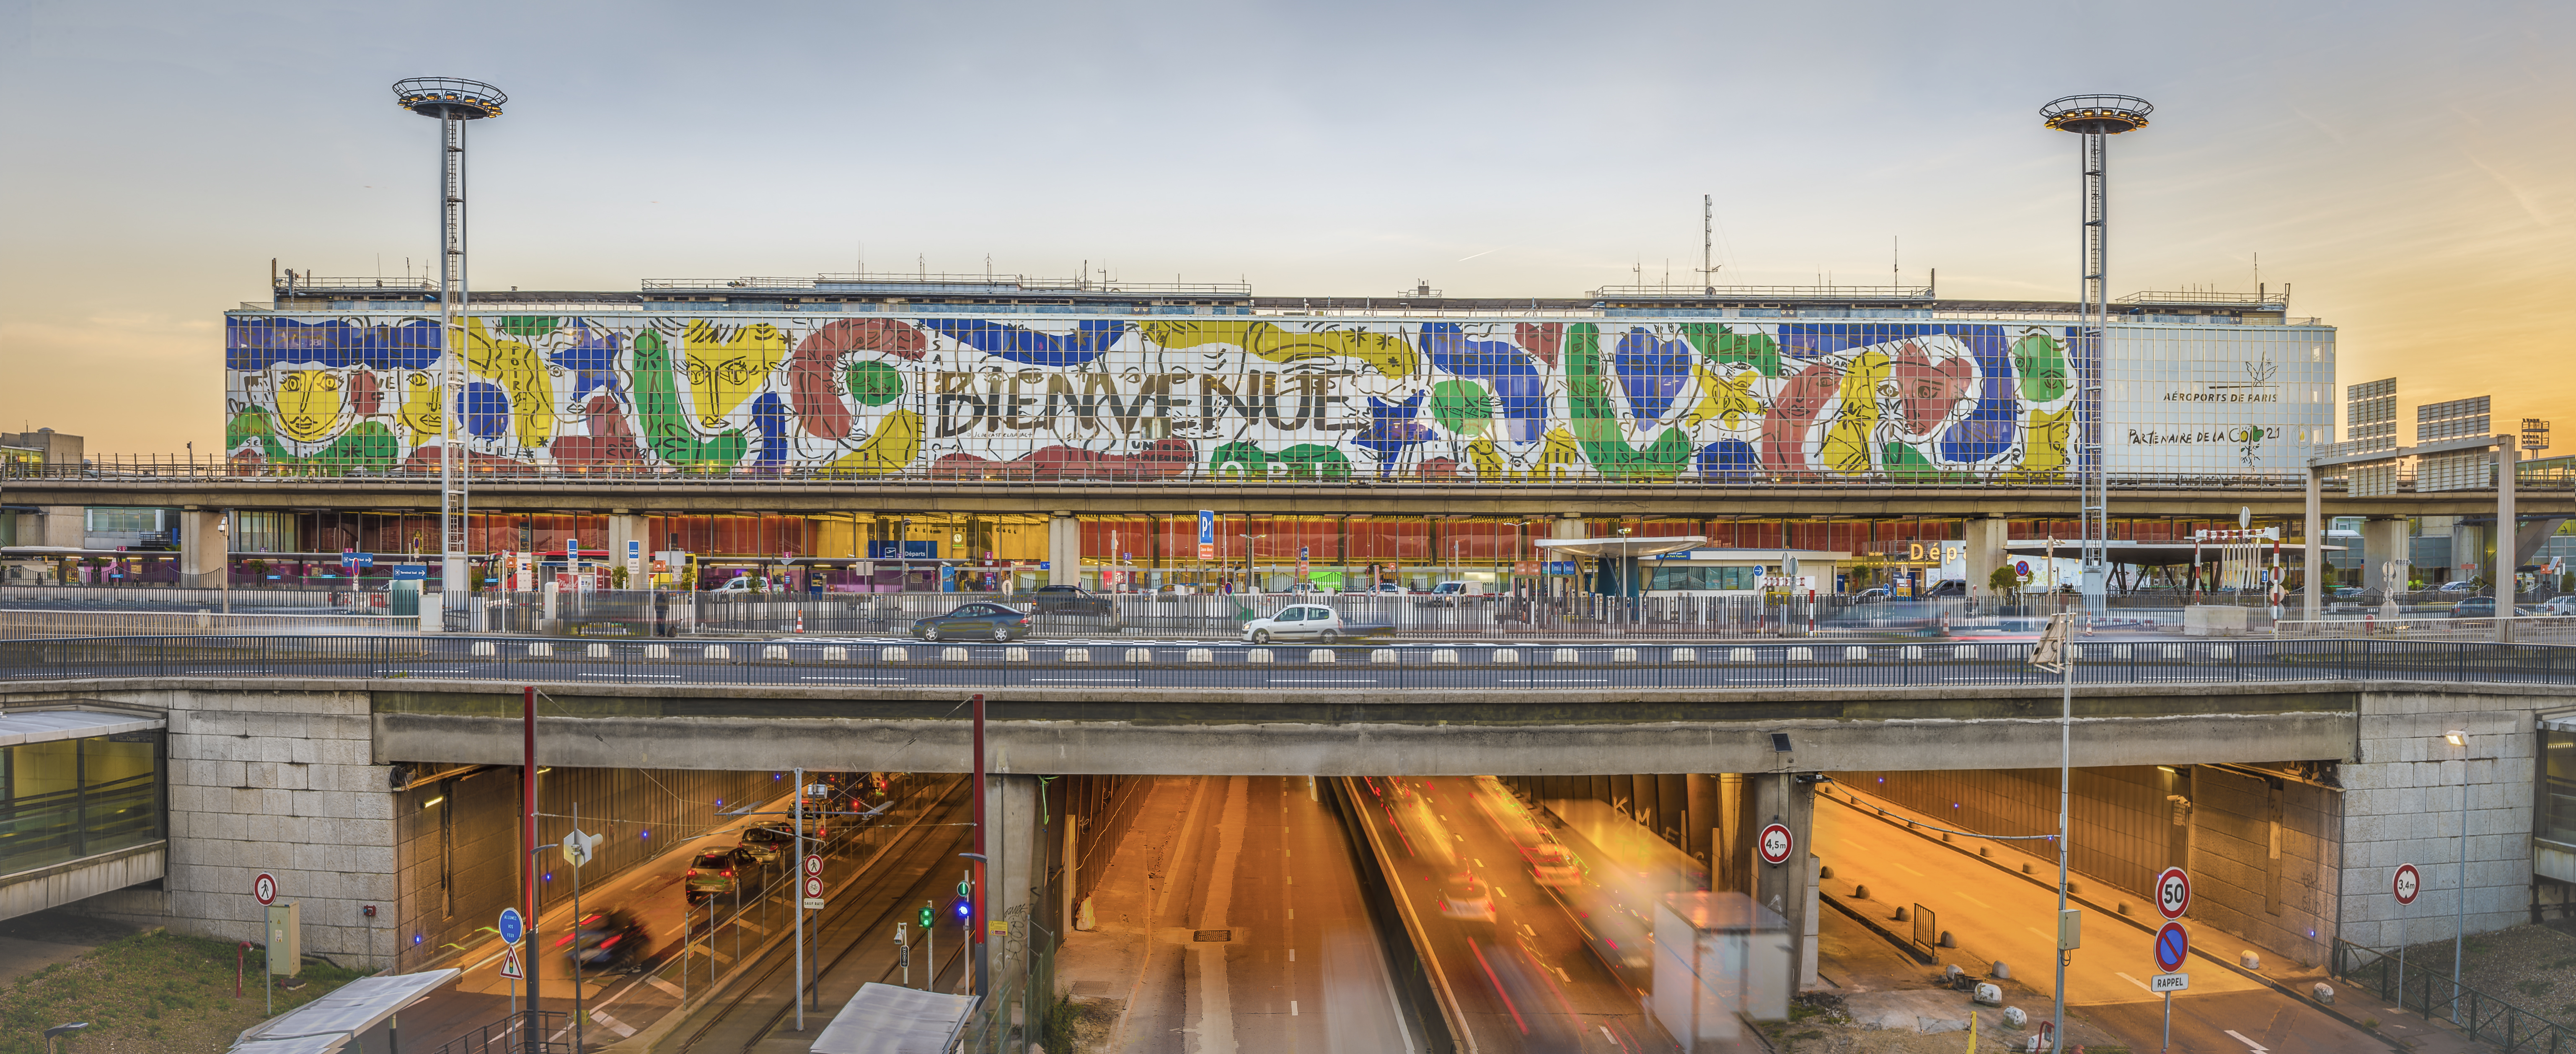 Aeroporto Orly : Contemporary art greets passengers at paris orly airport in the form